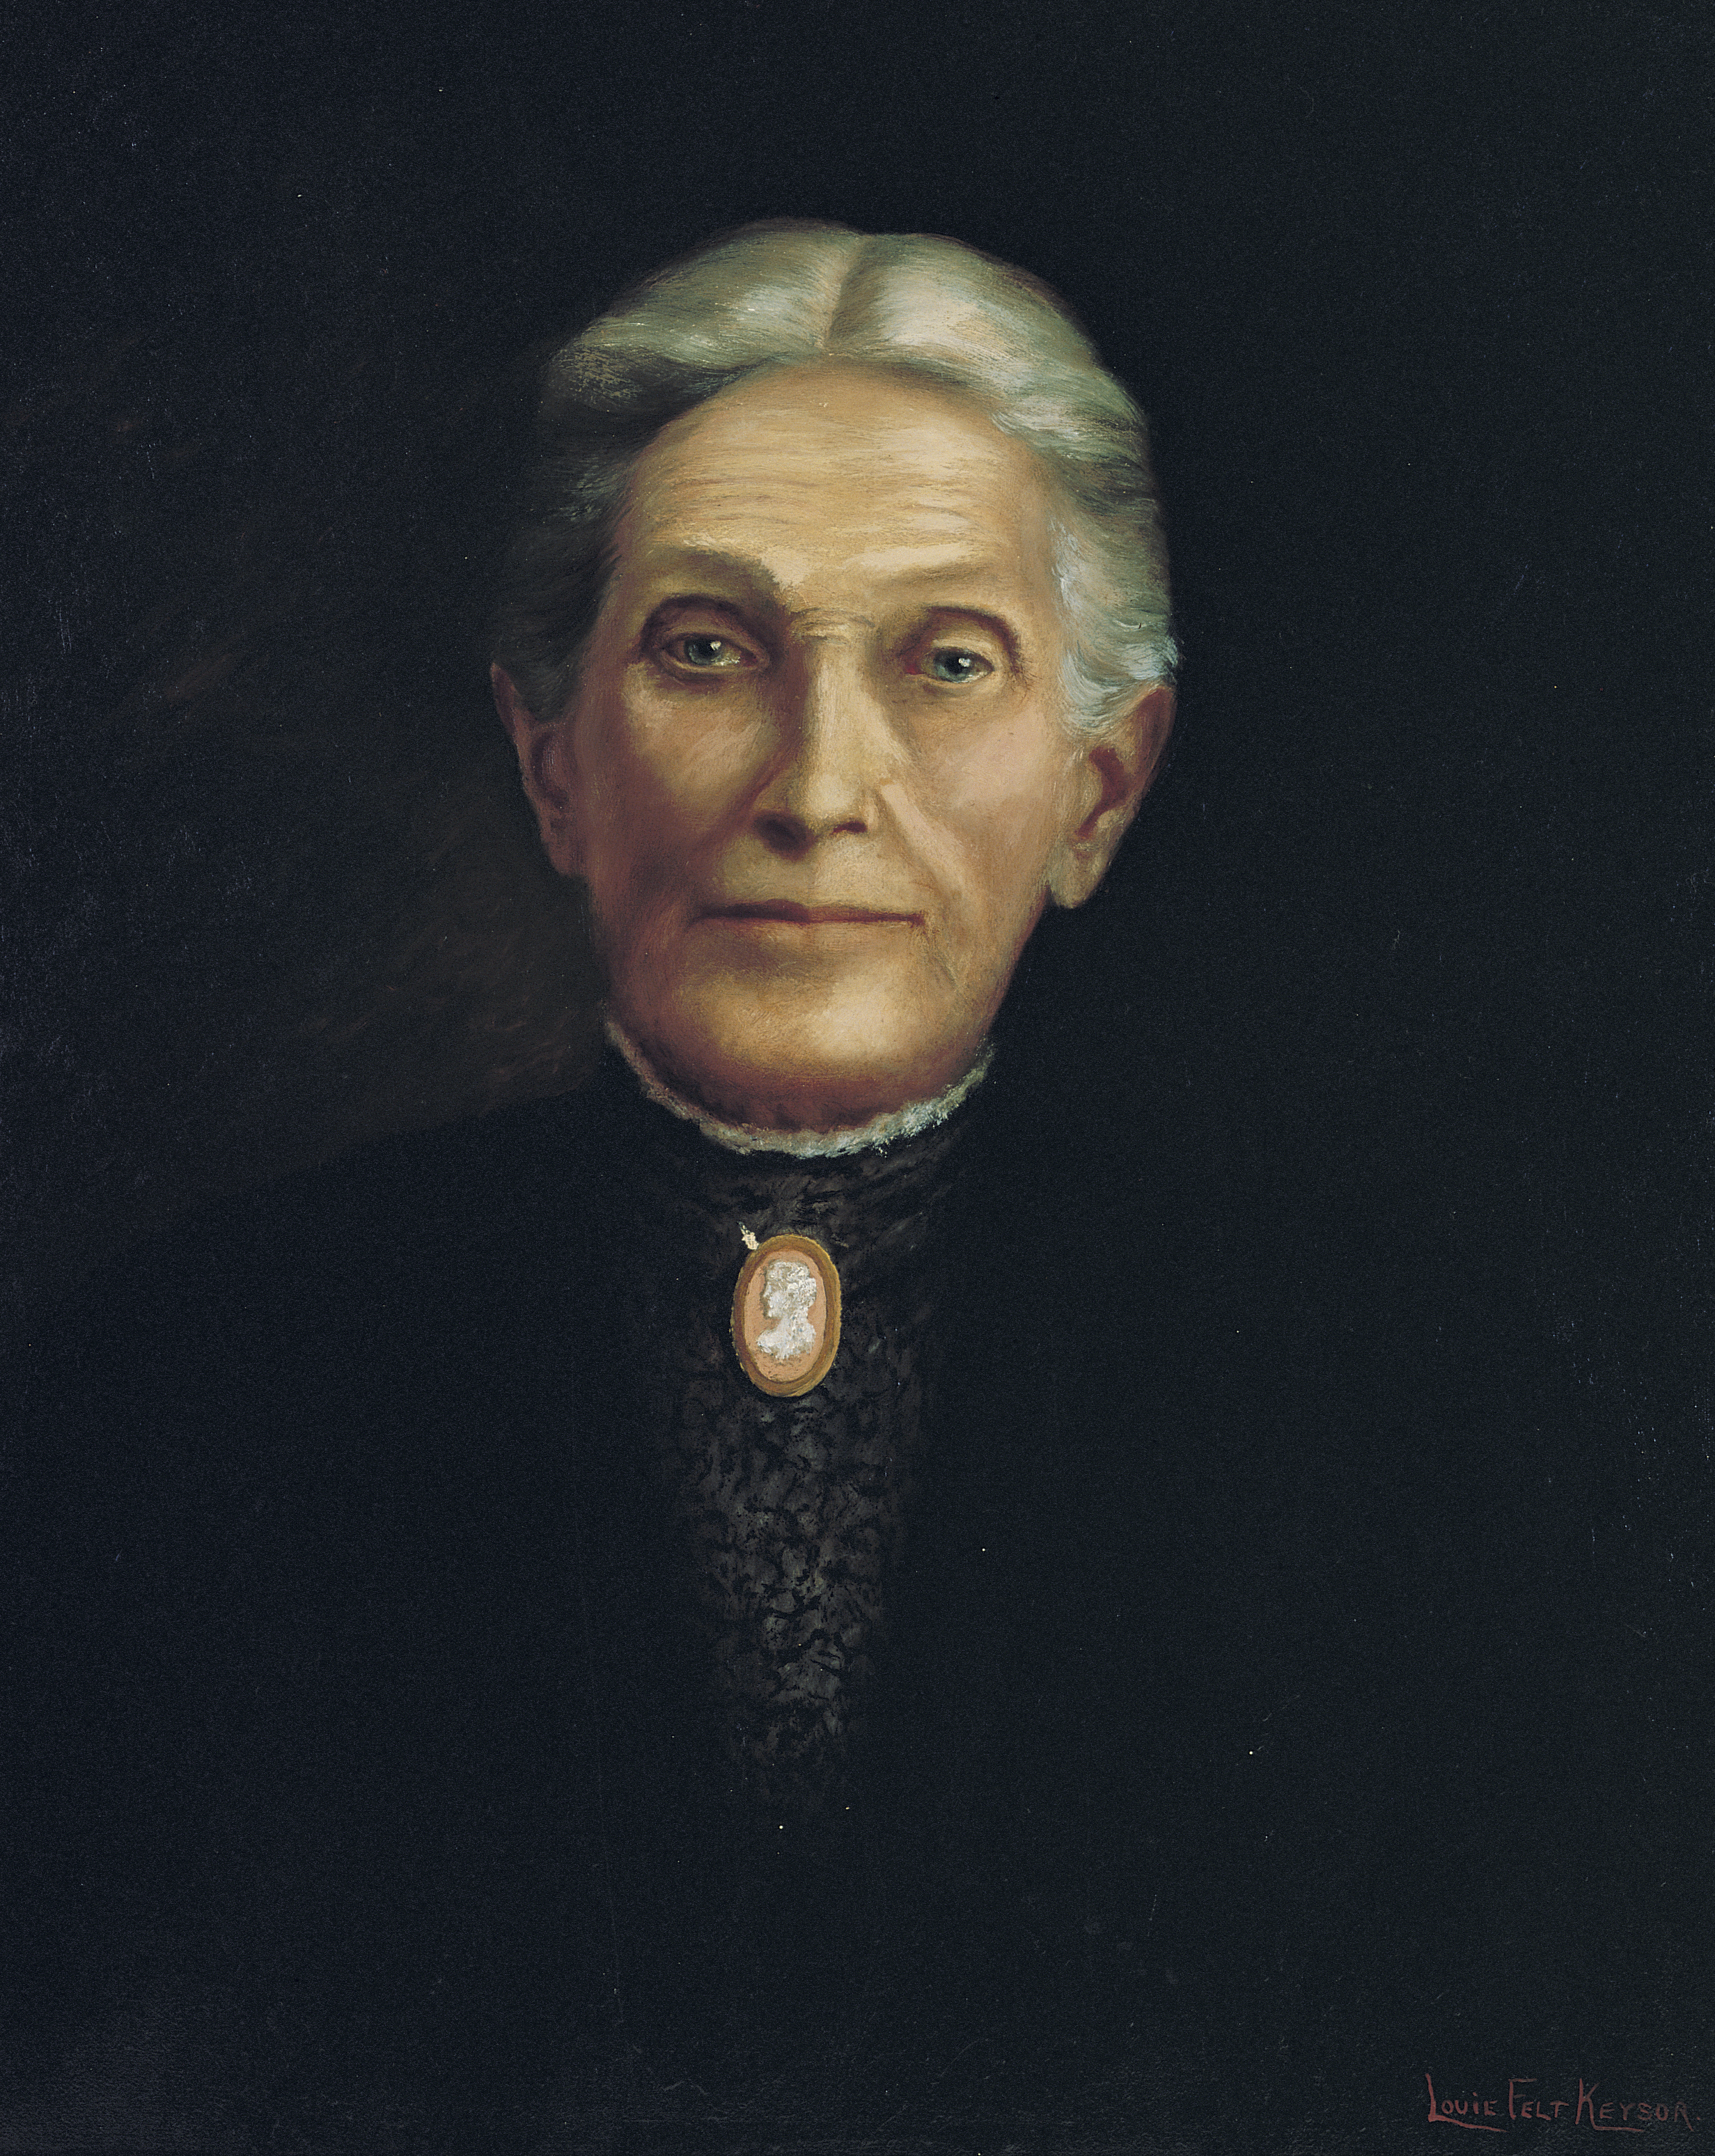 A photograph of Aurelia Spencer Rogers, who is known as the founder of the Primary, which was organized in 1878.